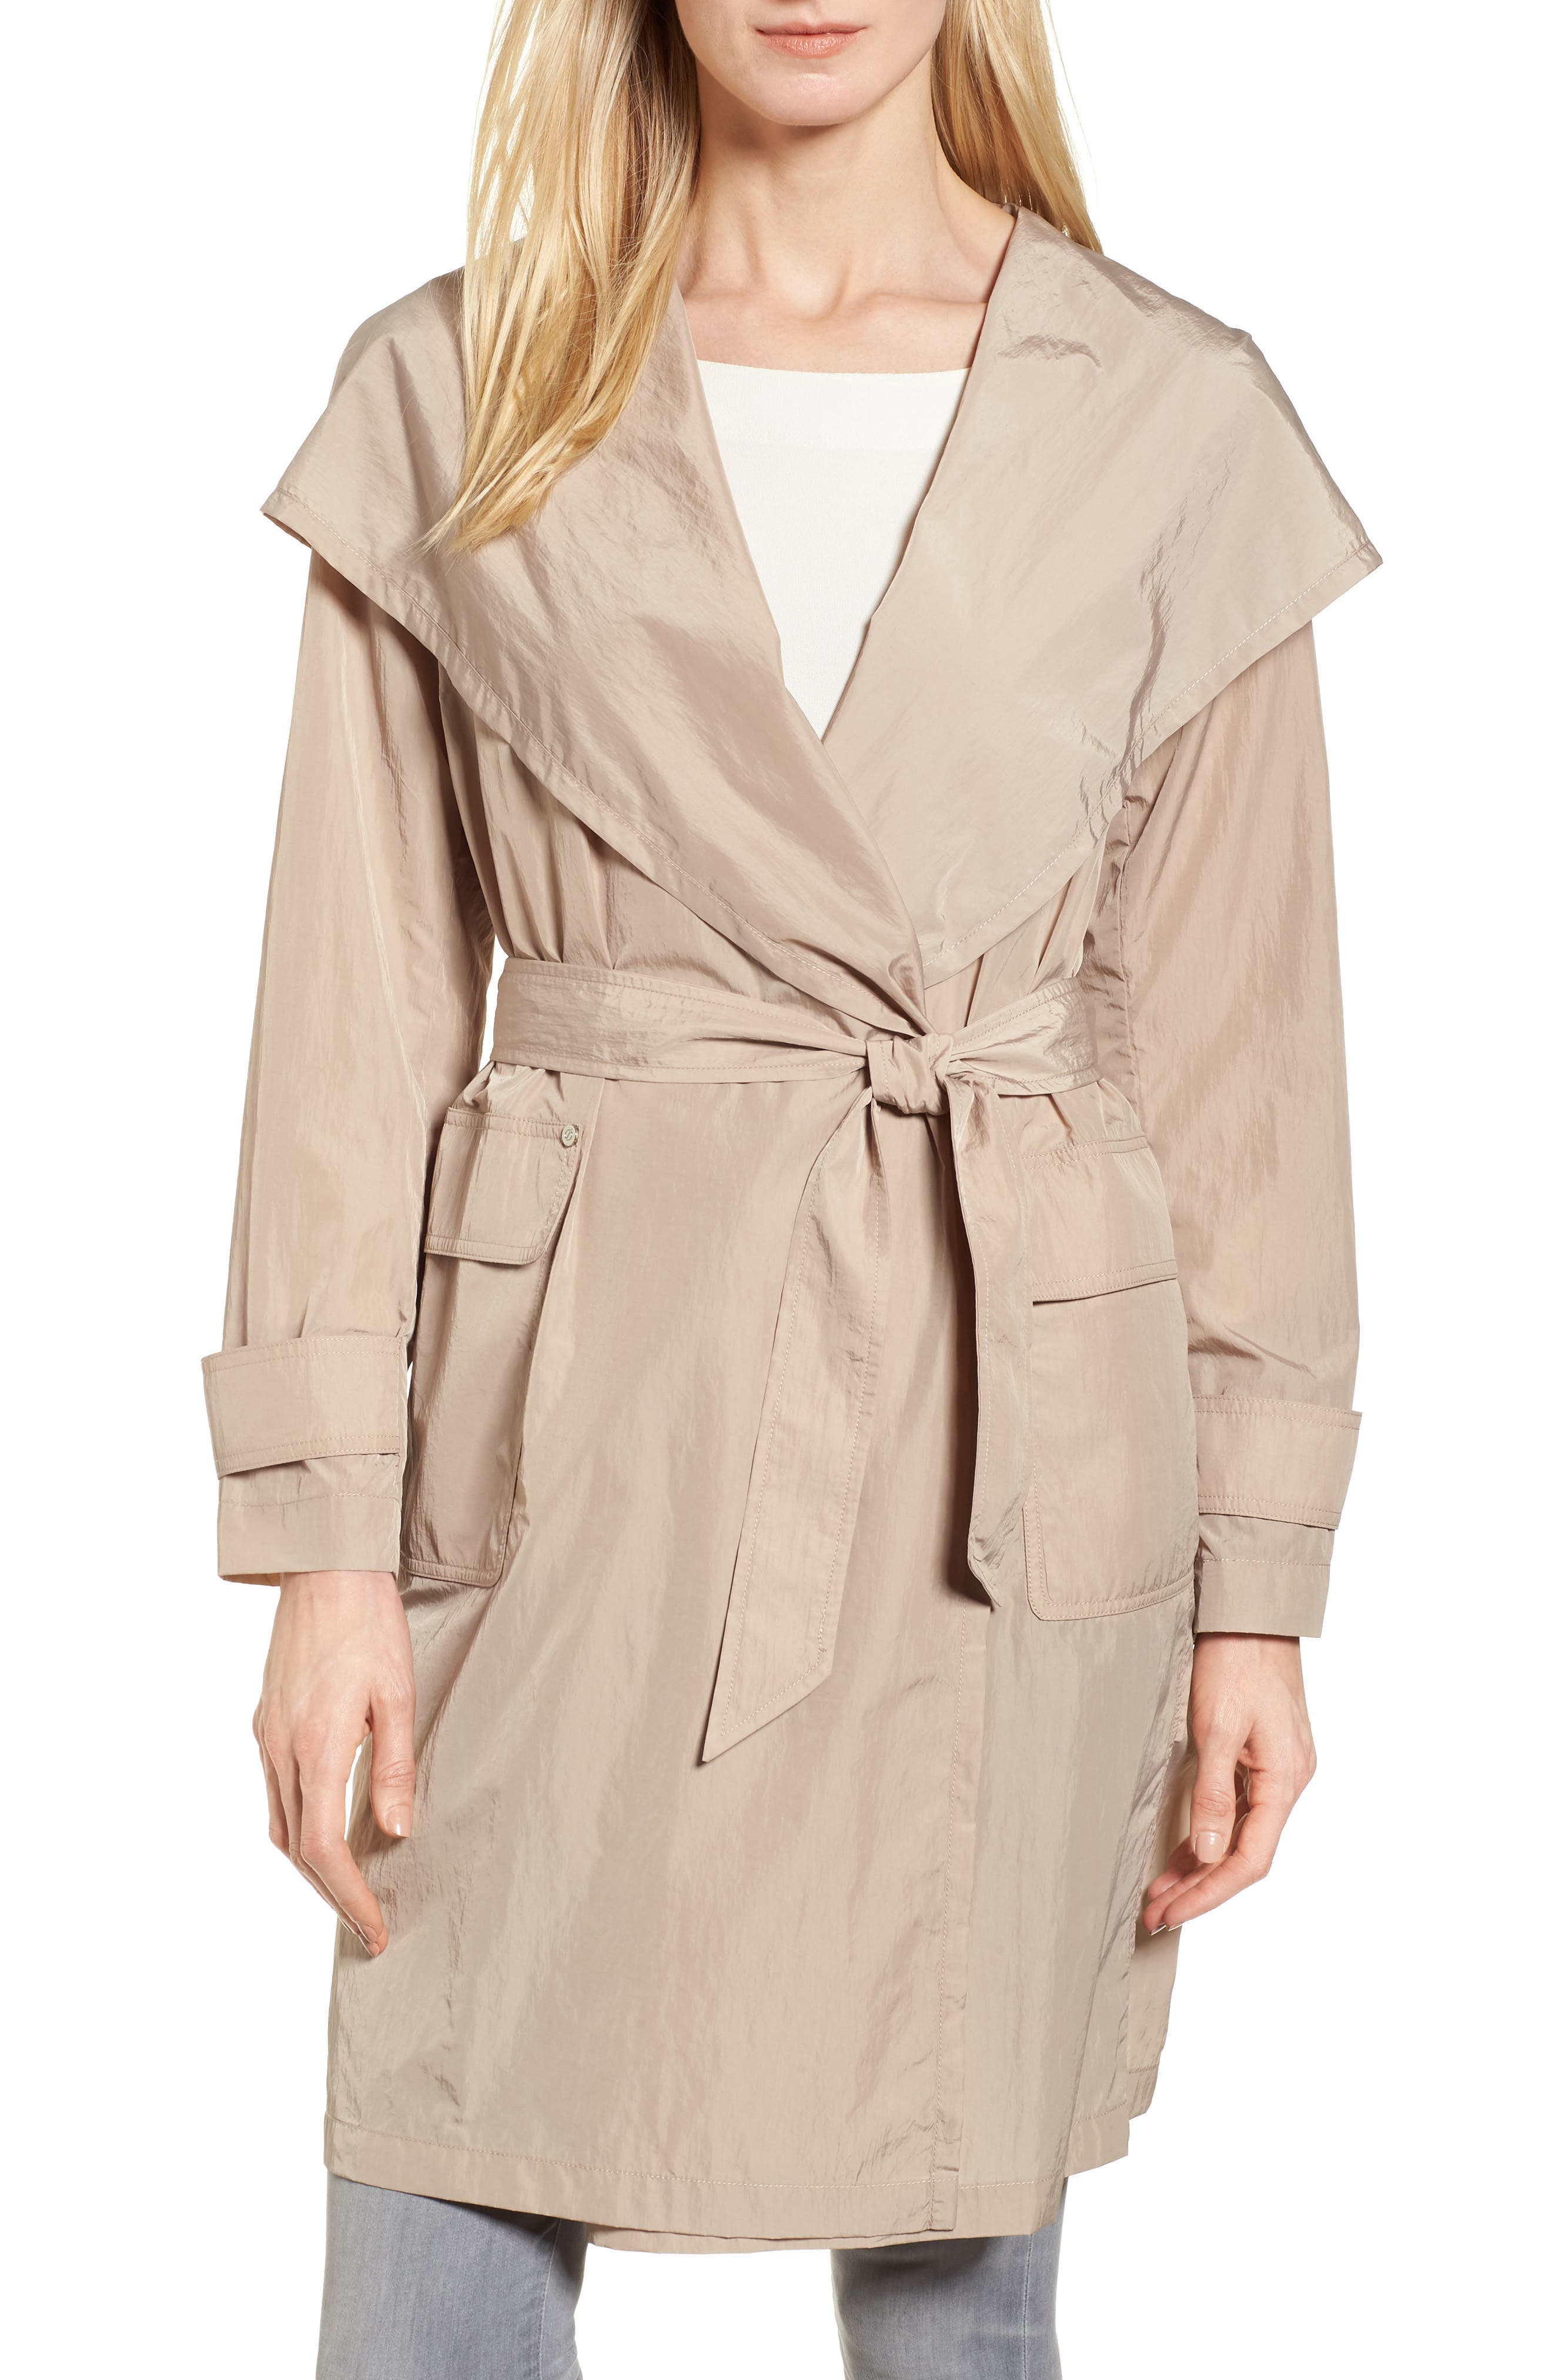 Flo Packable Hooded Raincoat,                         Main,                         color, Dune